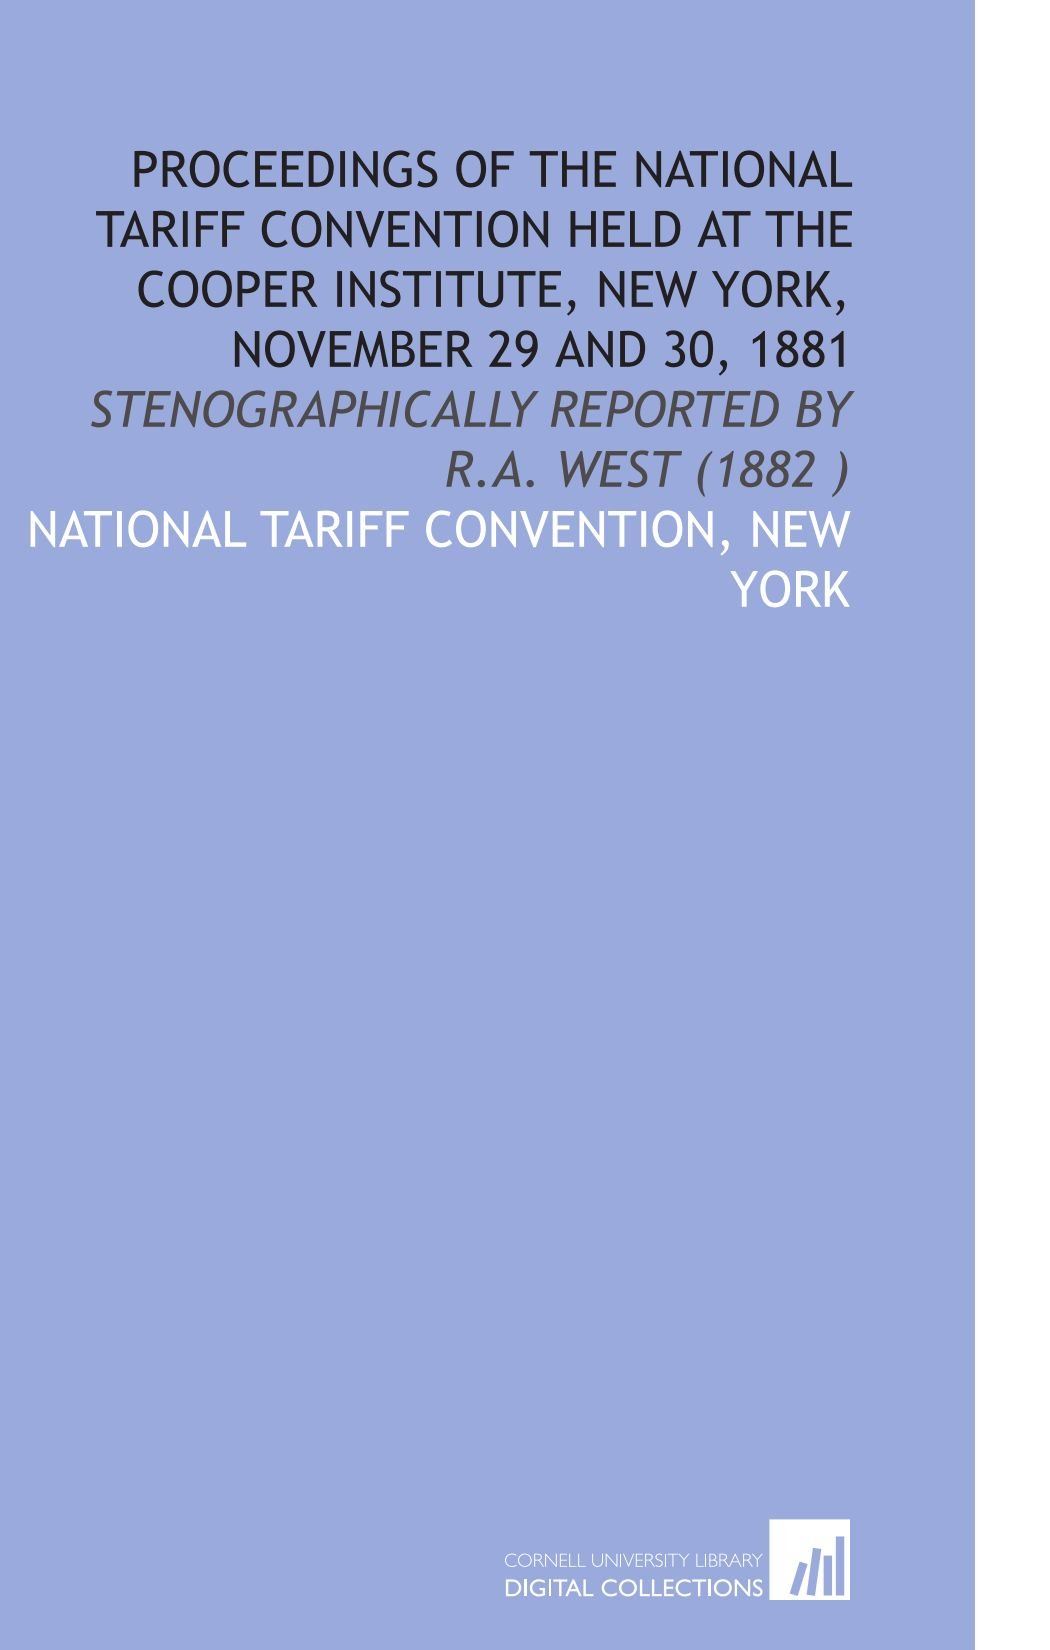 Download Proceedings of the National Tariff Convention Held at the Cooper Institute, New York, November 29 and 30, 1881: Stenographically Reported by R.a. West (1882 ) ebook